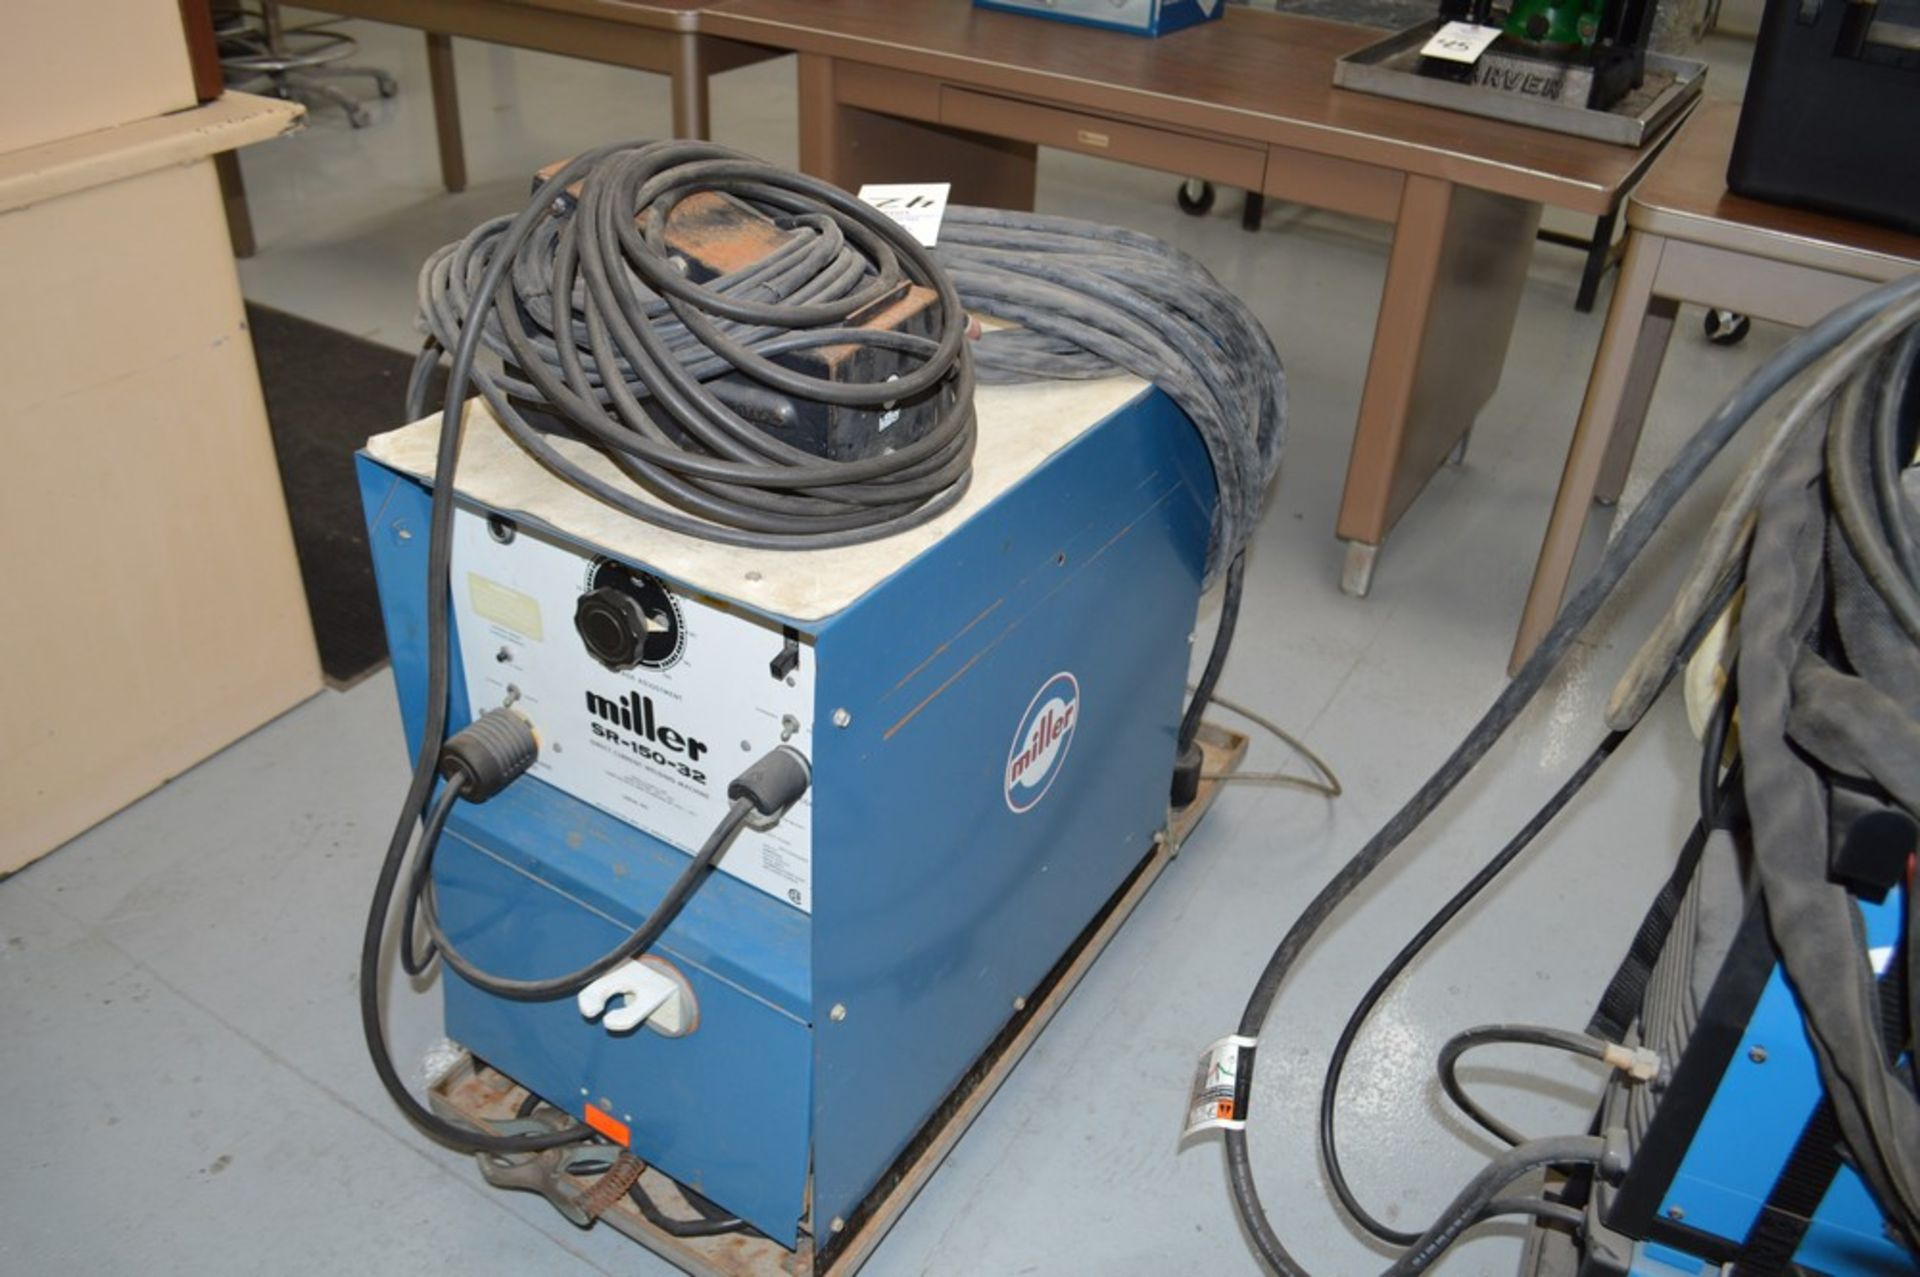 Miller SR-150-32 DC Welder on metal rolling cart, foot pedal and gas lines included - Image 4 of 5